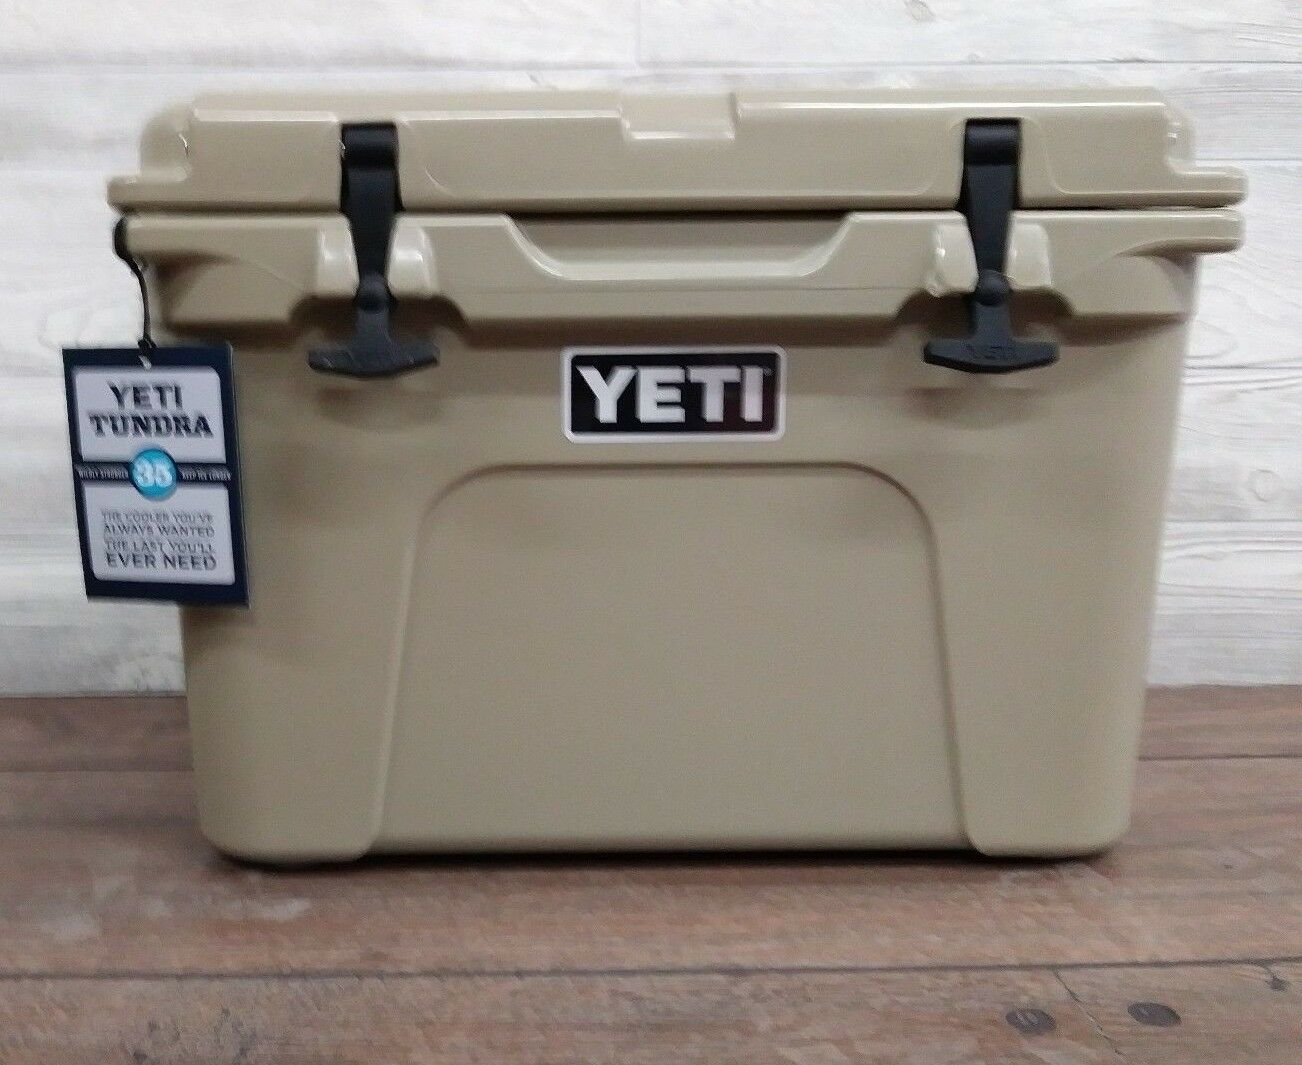 YETI 35 QT. Tundra  COOLER - TAN  -  Factory sealed